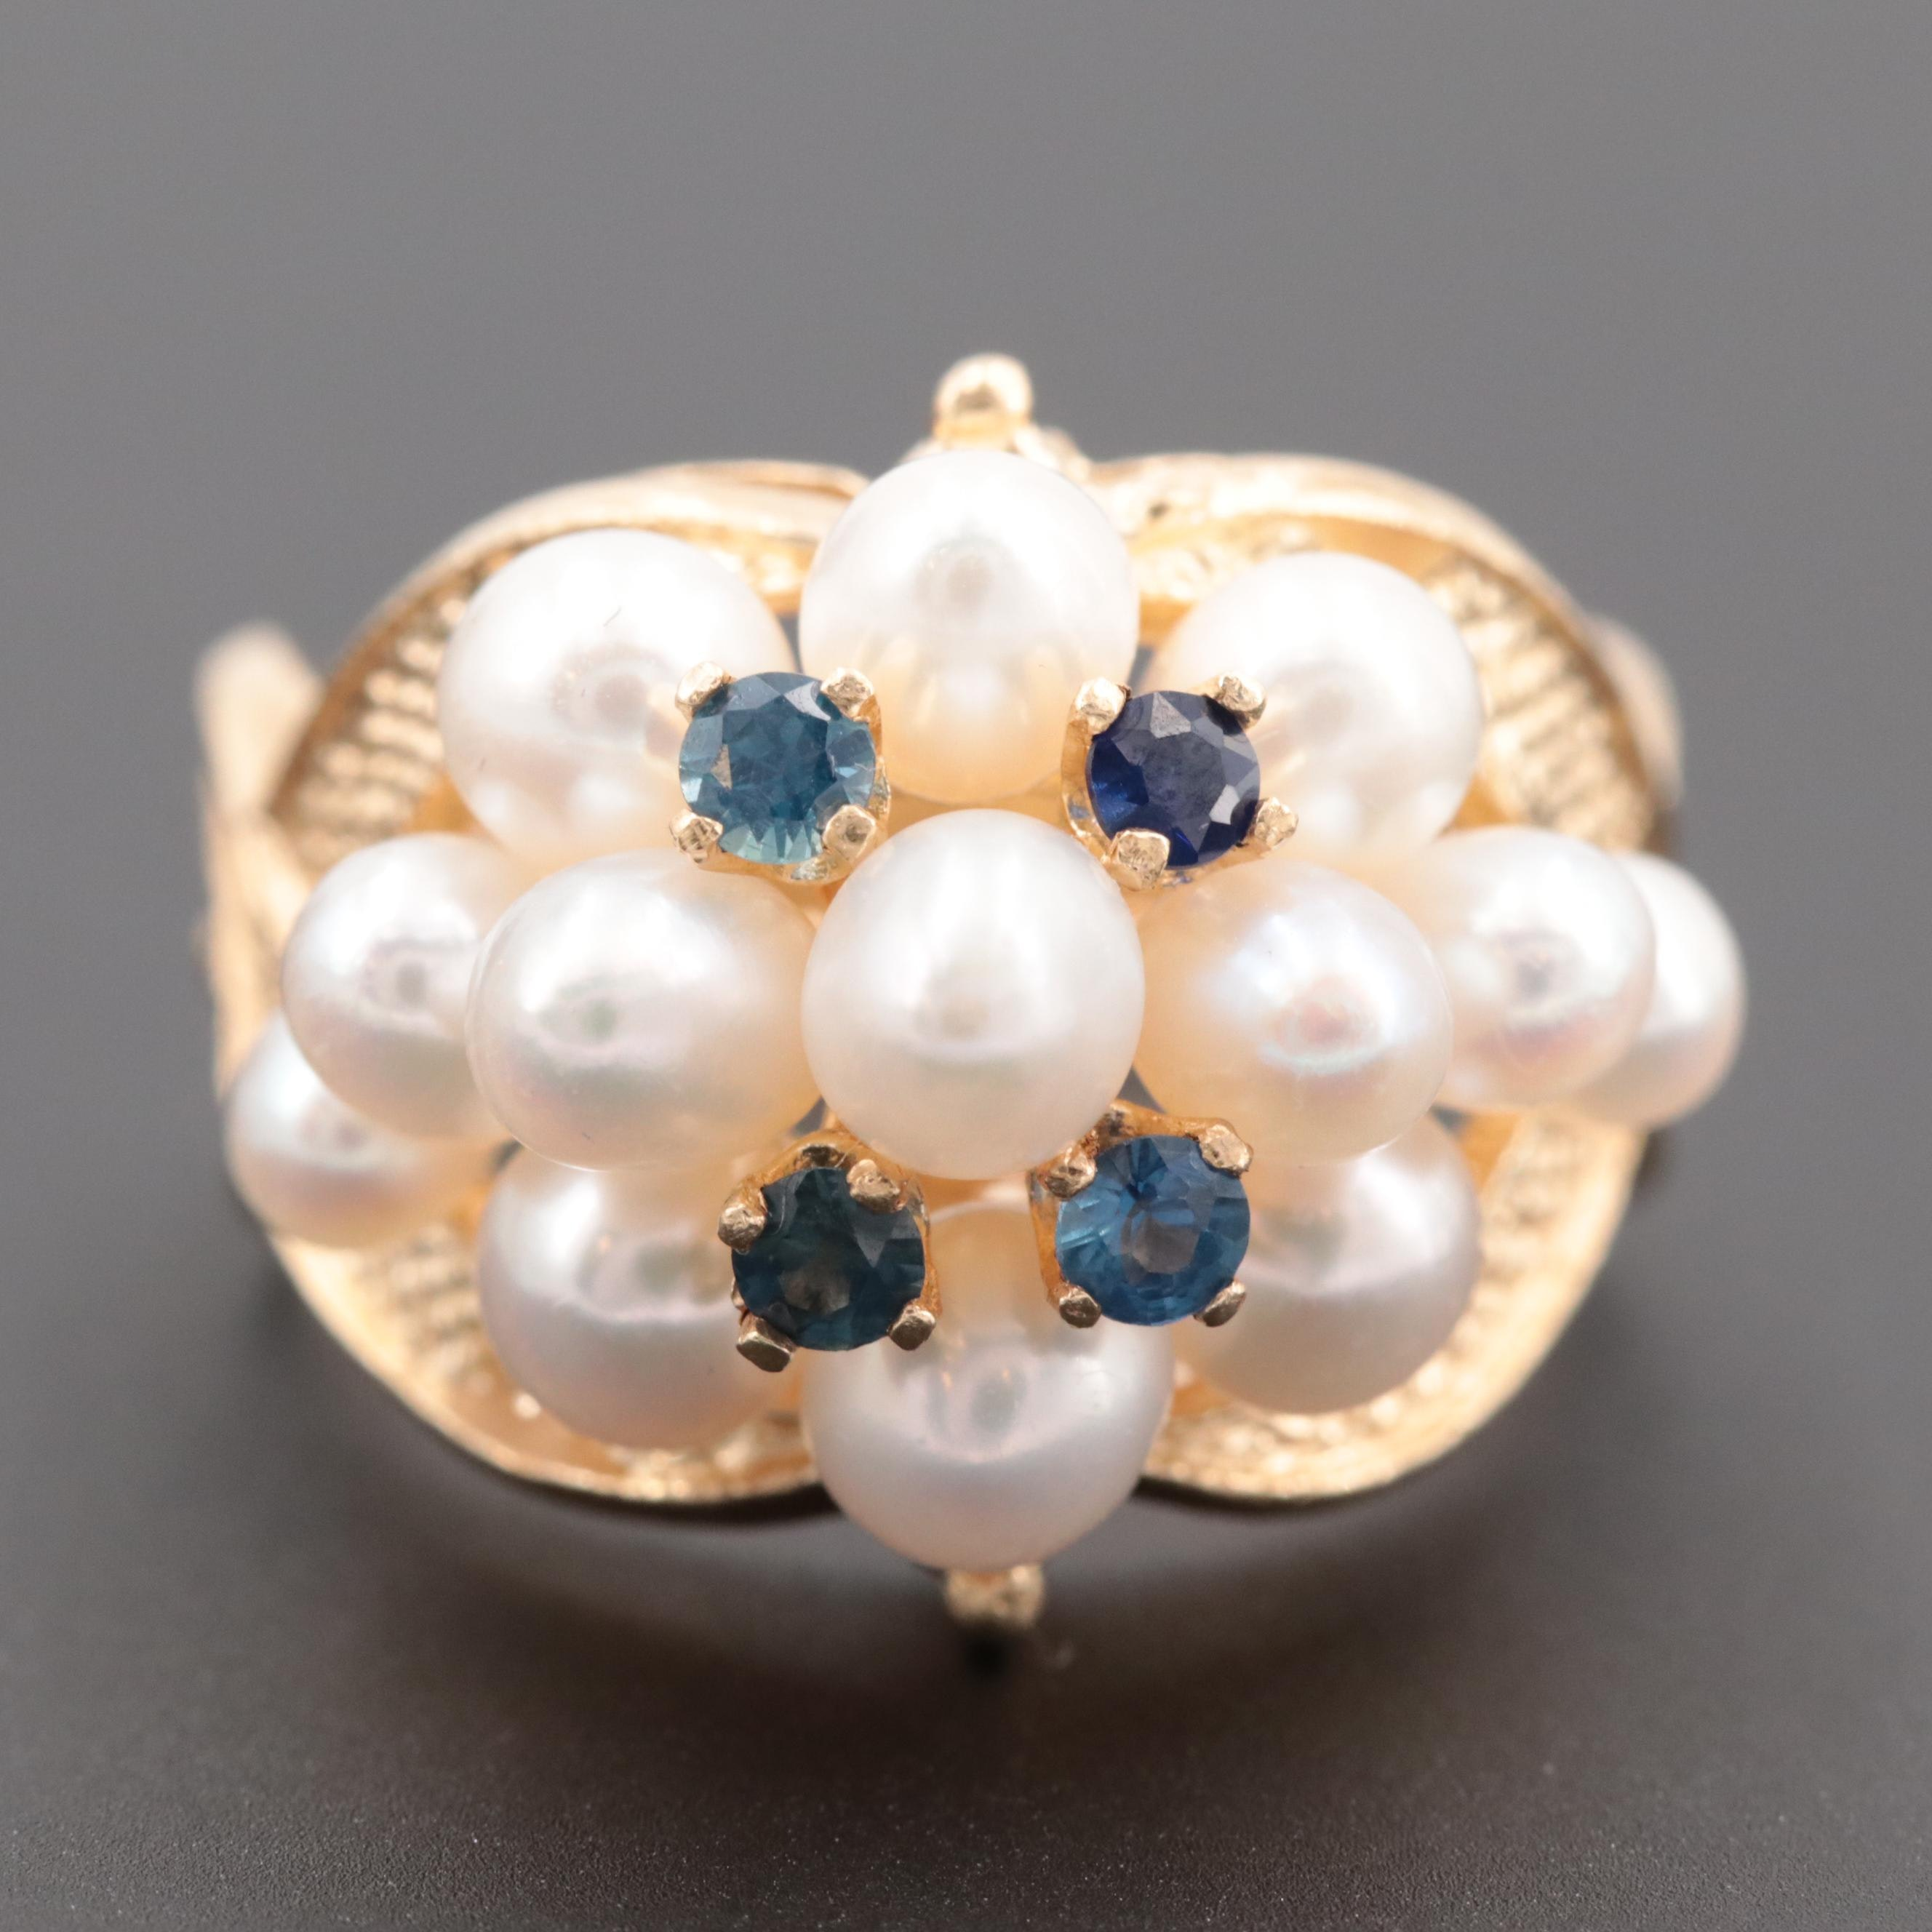 Vintage 14K Yellow Gold Blue Sapphire and Cultured Pearl Bombé Ring